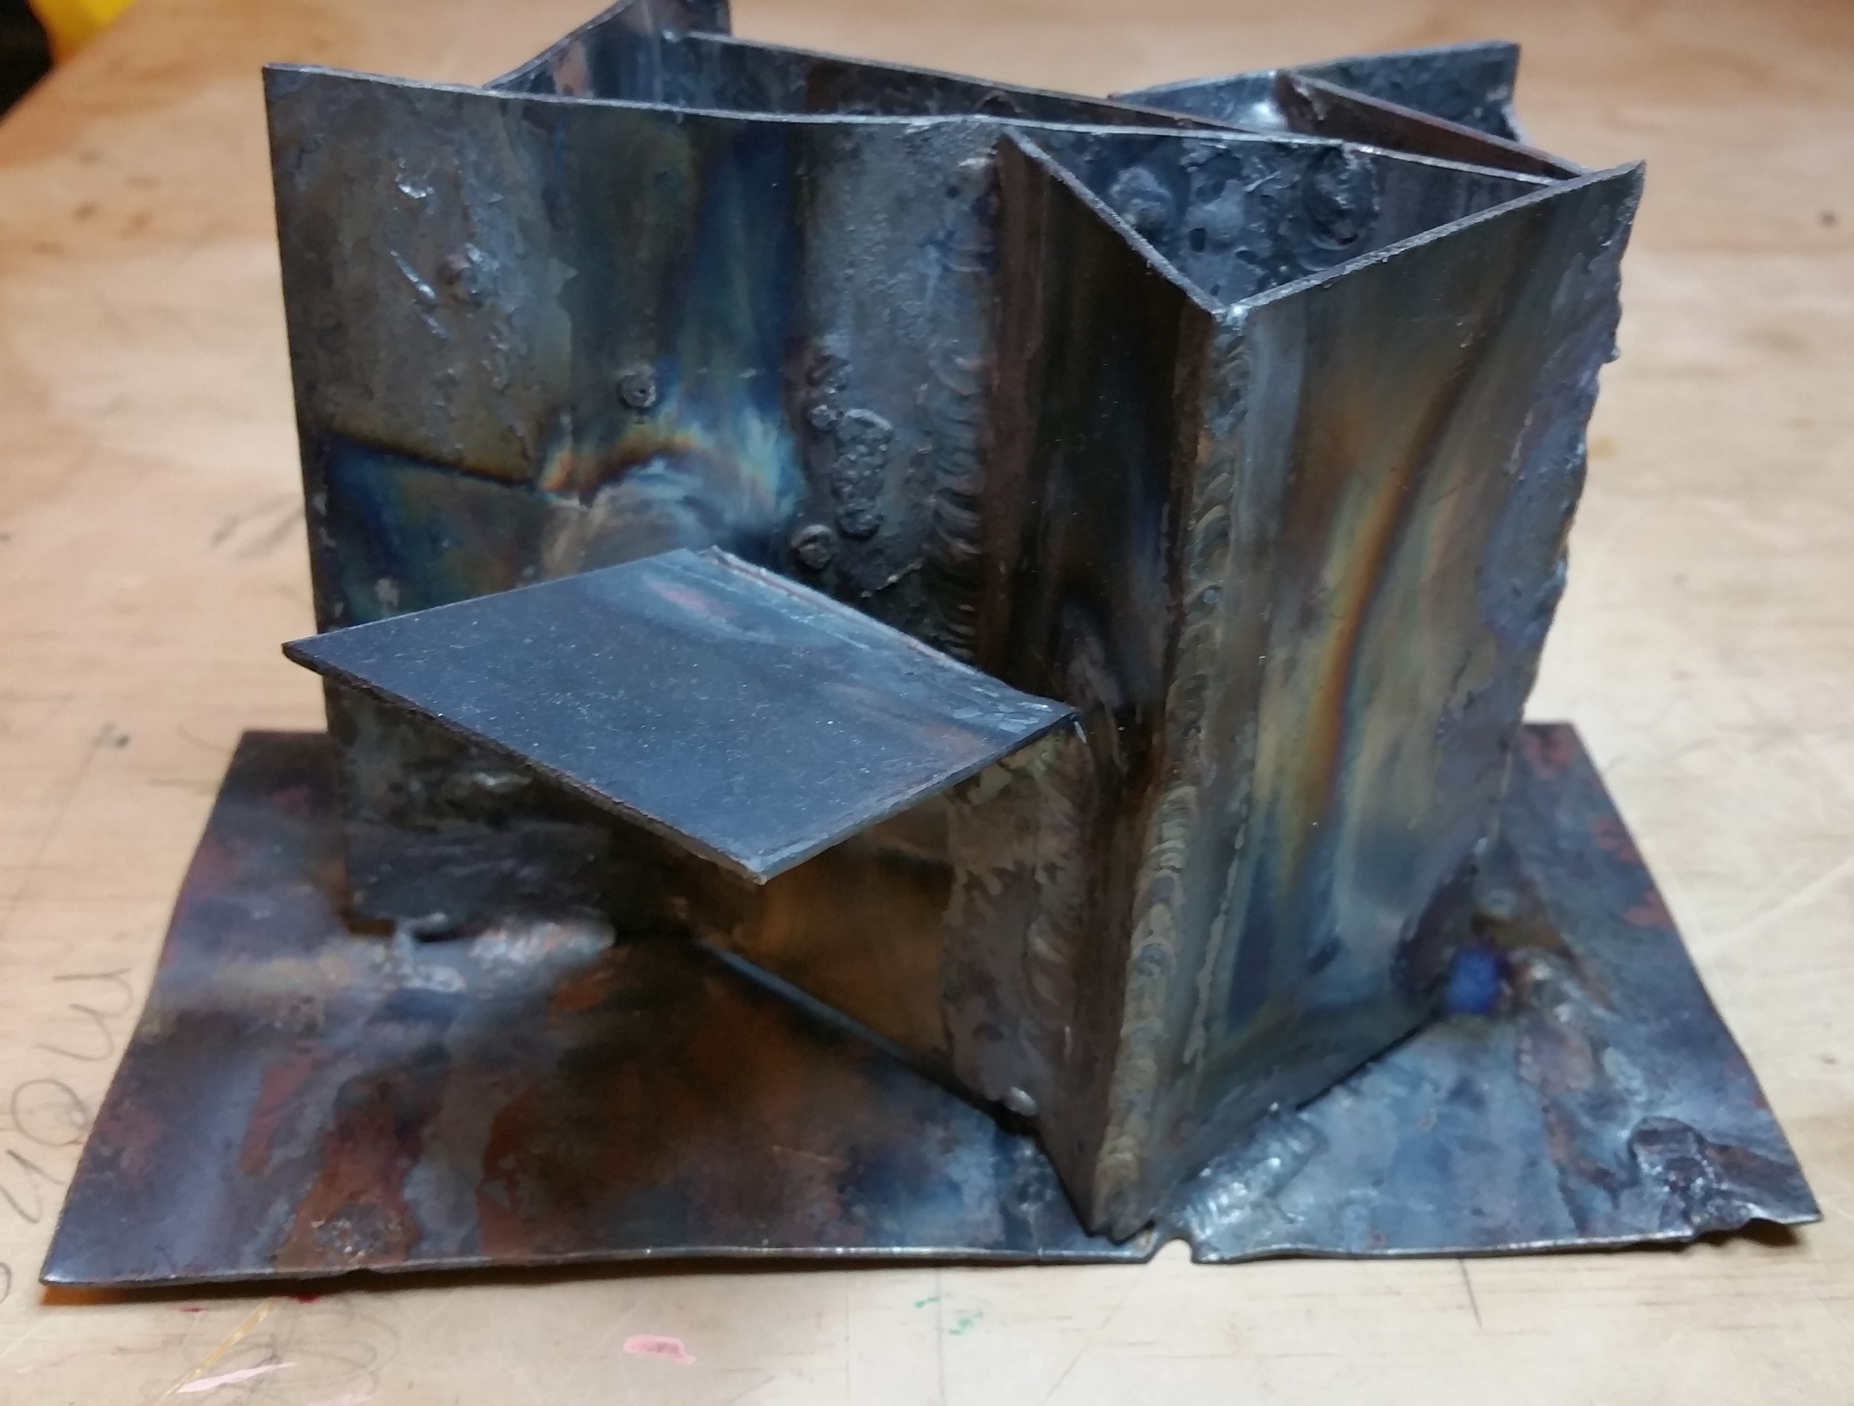 First attempt at welding various scraps at different angles